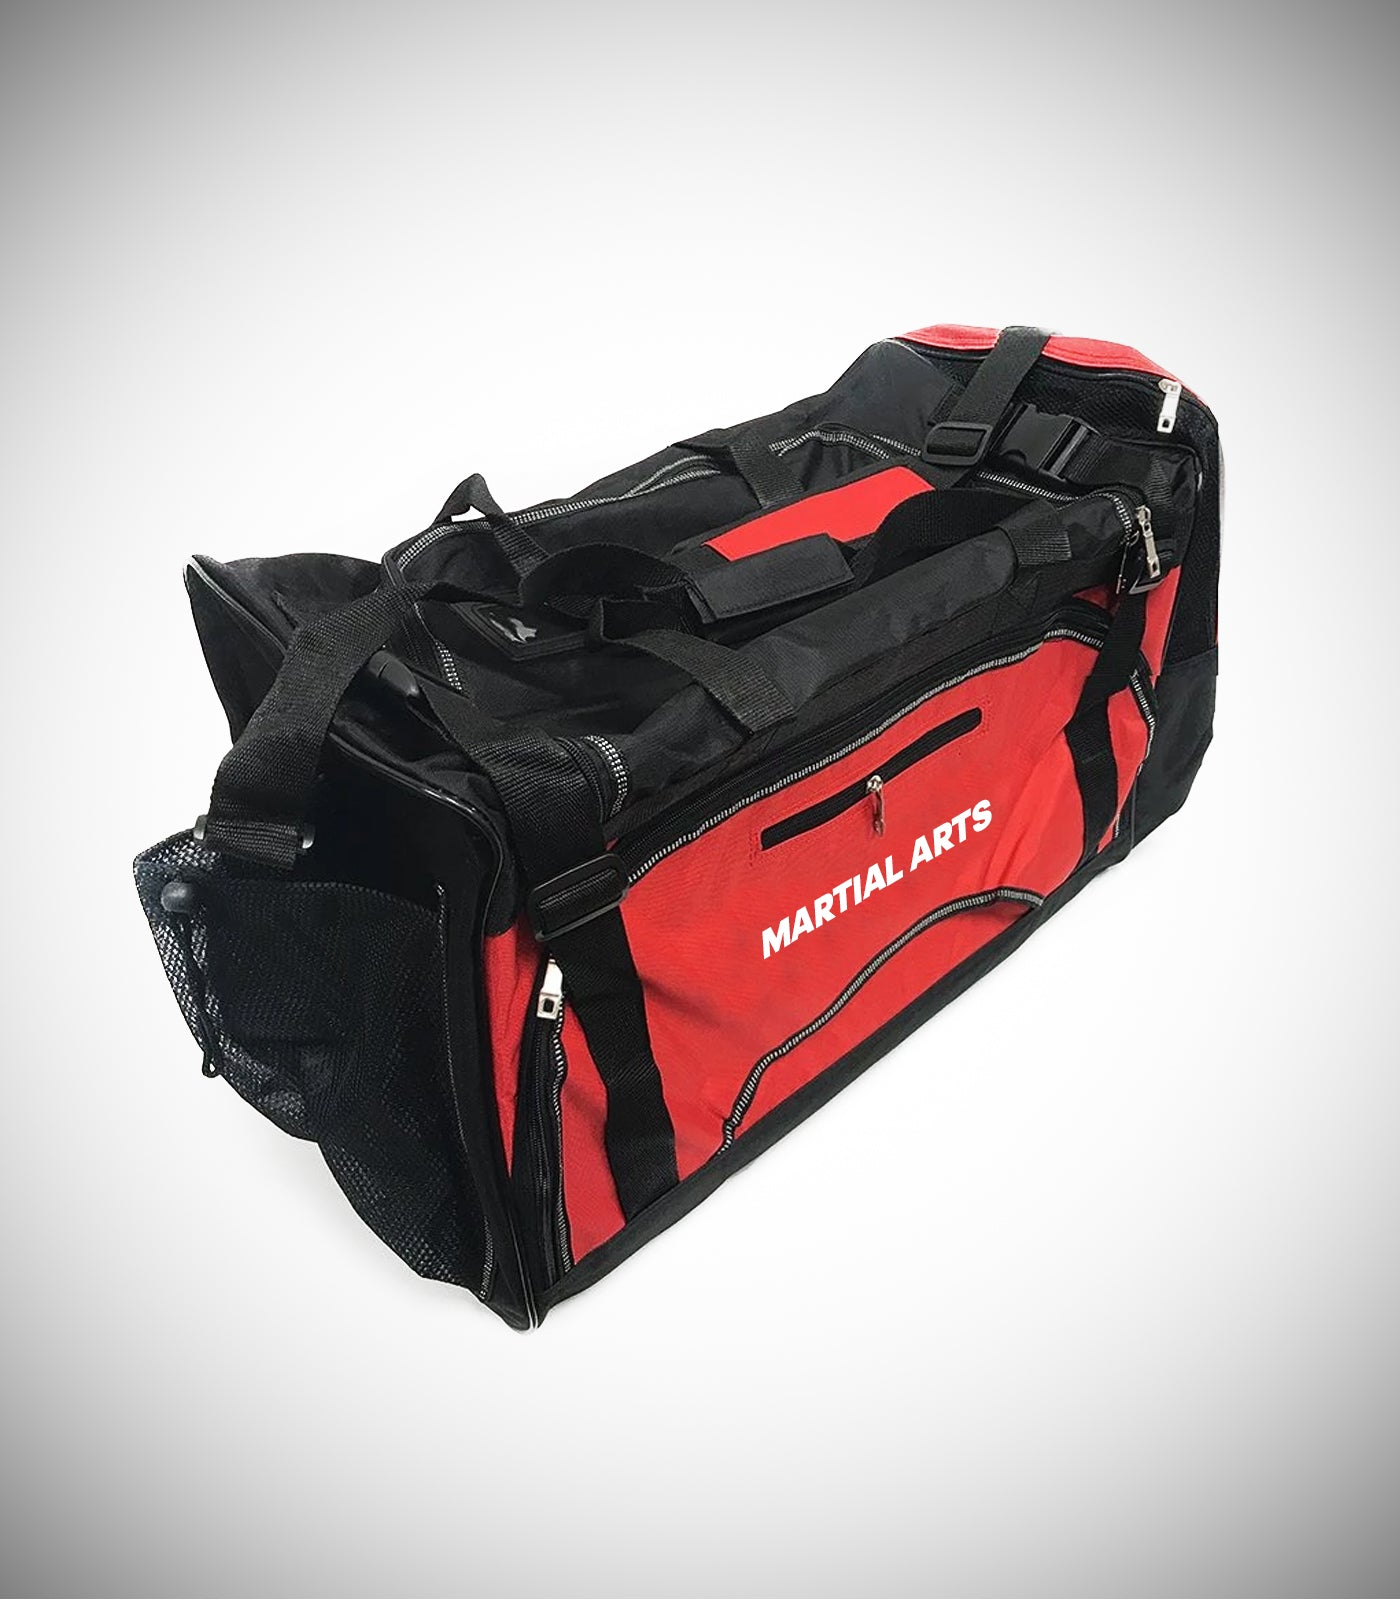 MUDO MARTIAL ARTS SPORTS BAG